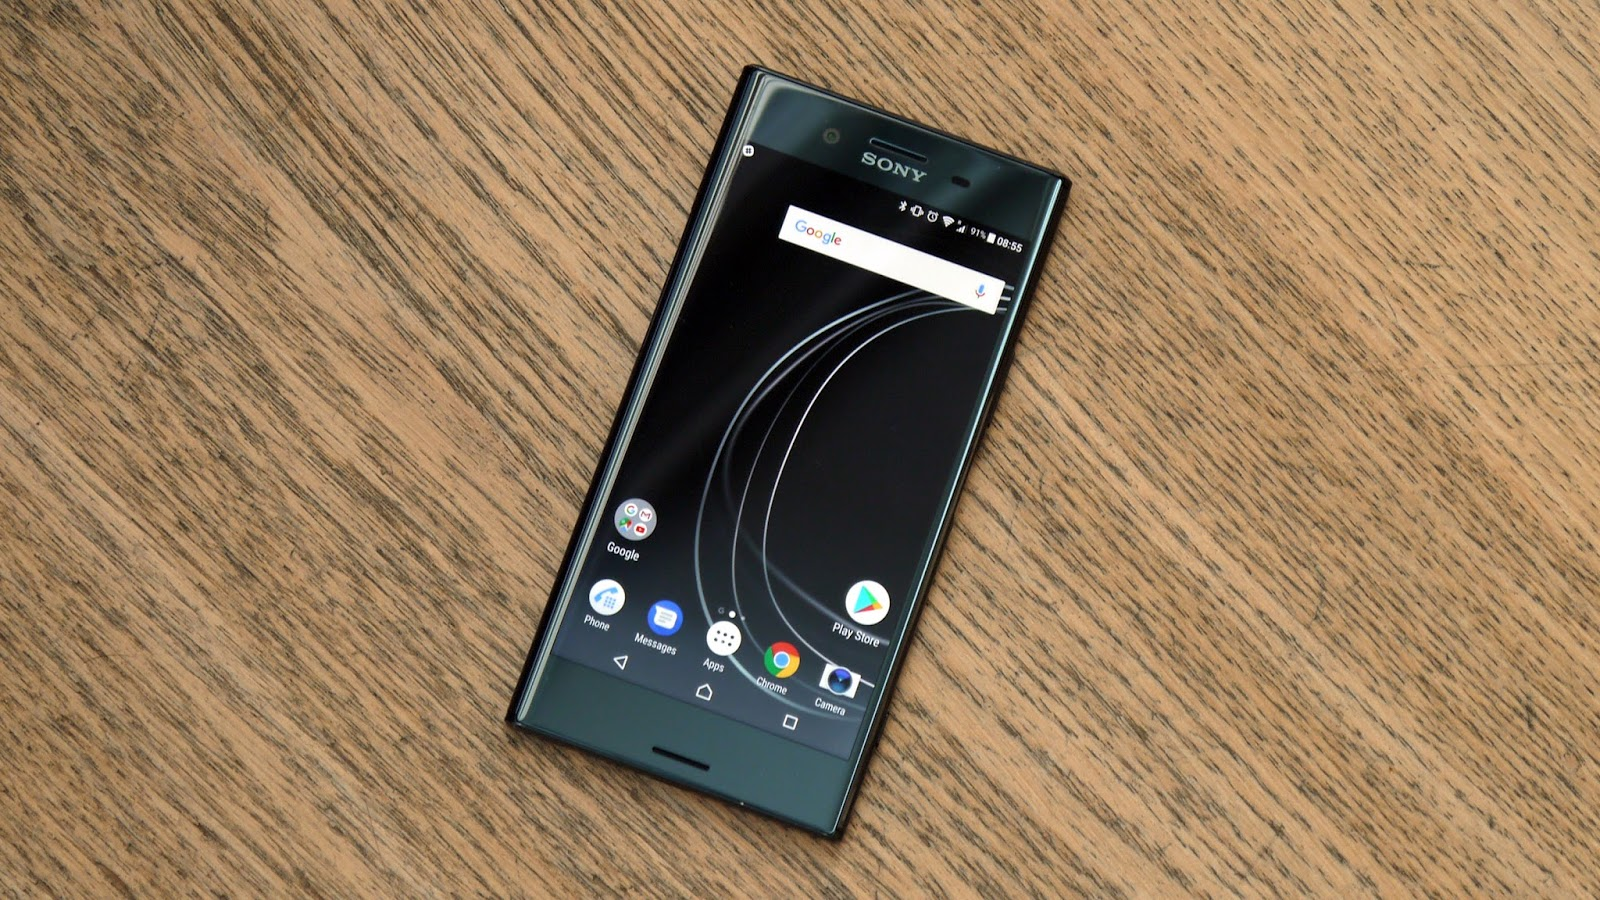 Sony Xperia H8541 Price in Nepal